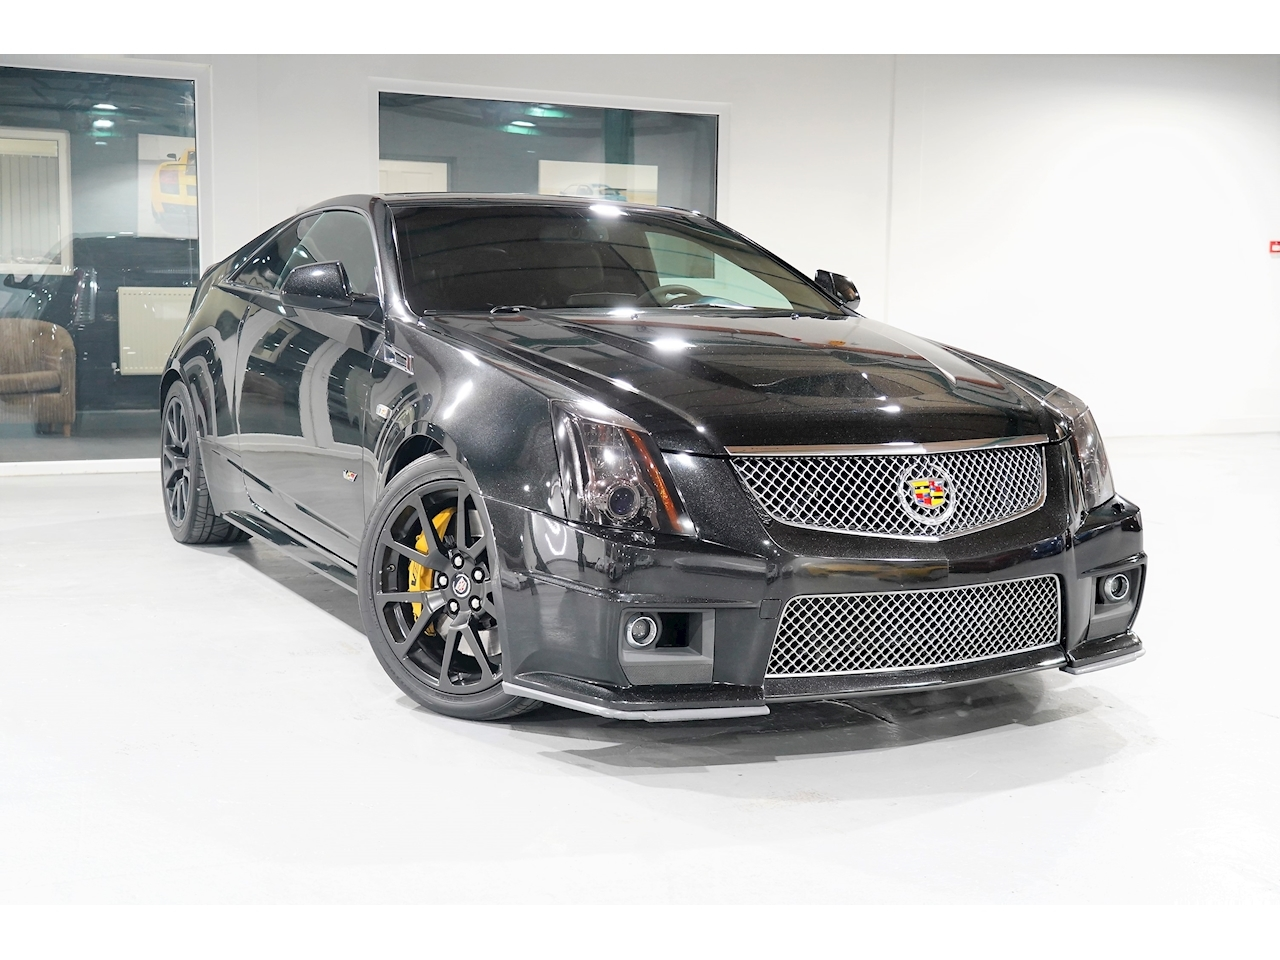 Used 40 Cadillac 40 Cadillac CTS V 40.40 V40 Coupe   Diamond ...